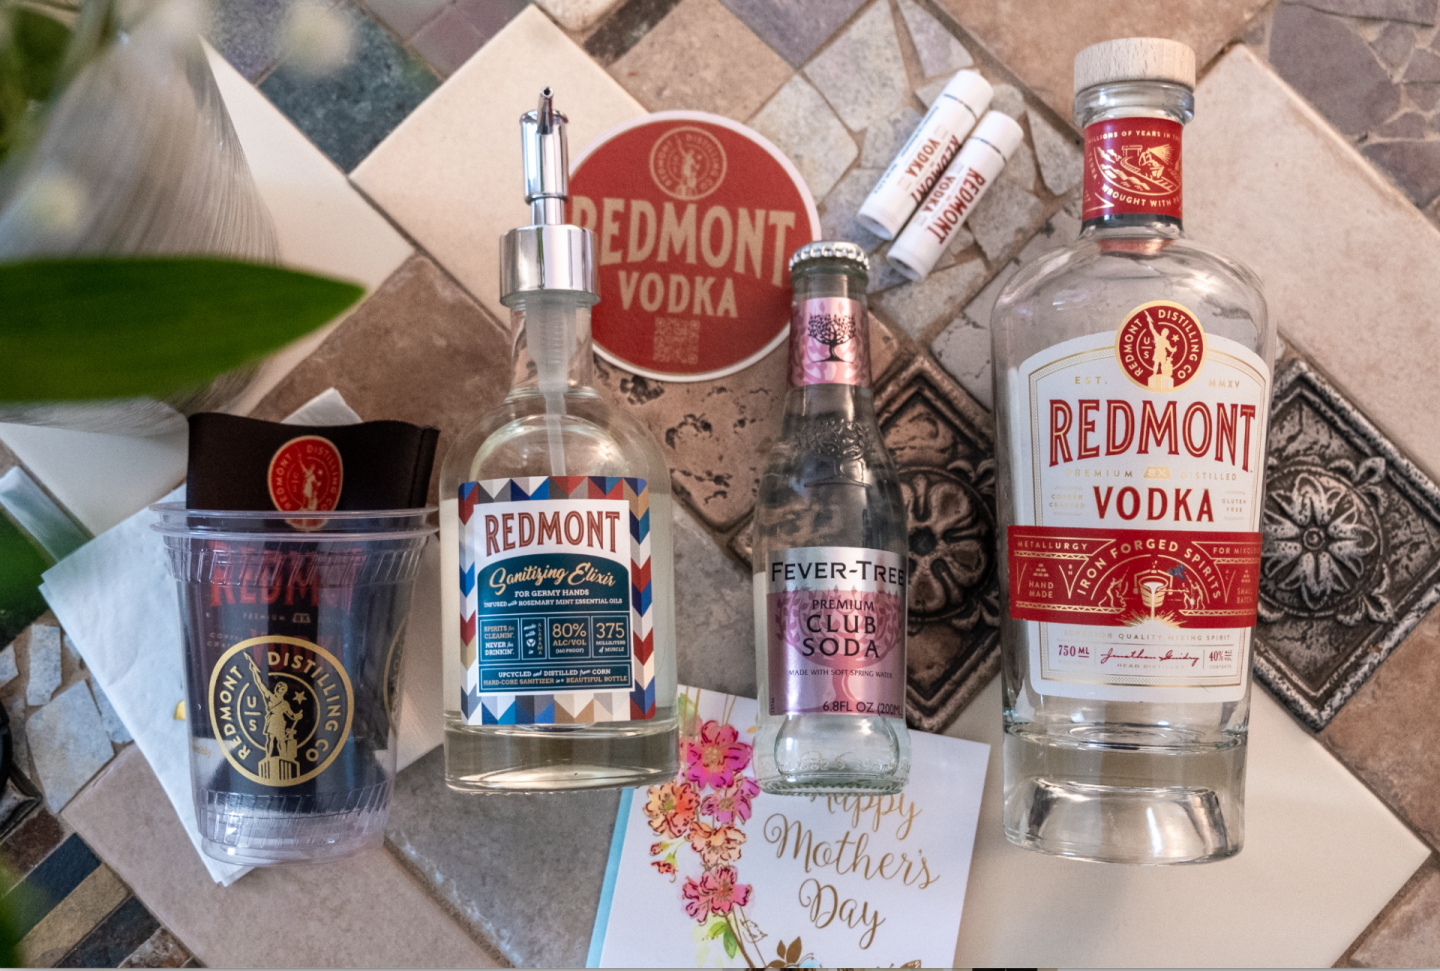 Redmont vodka